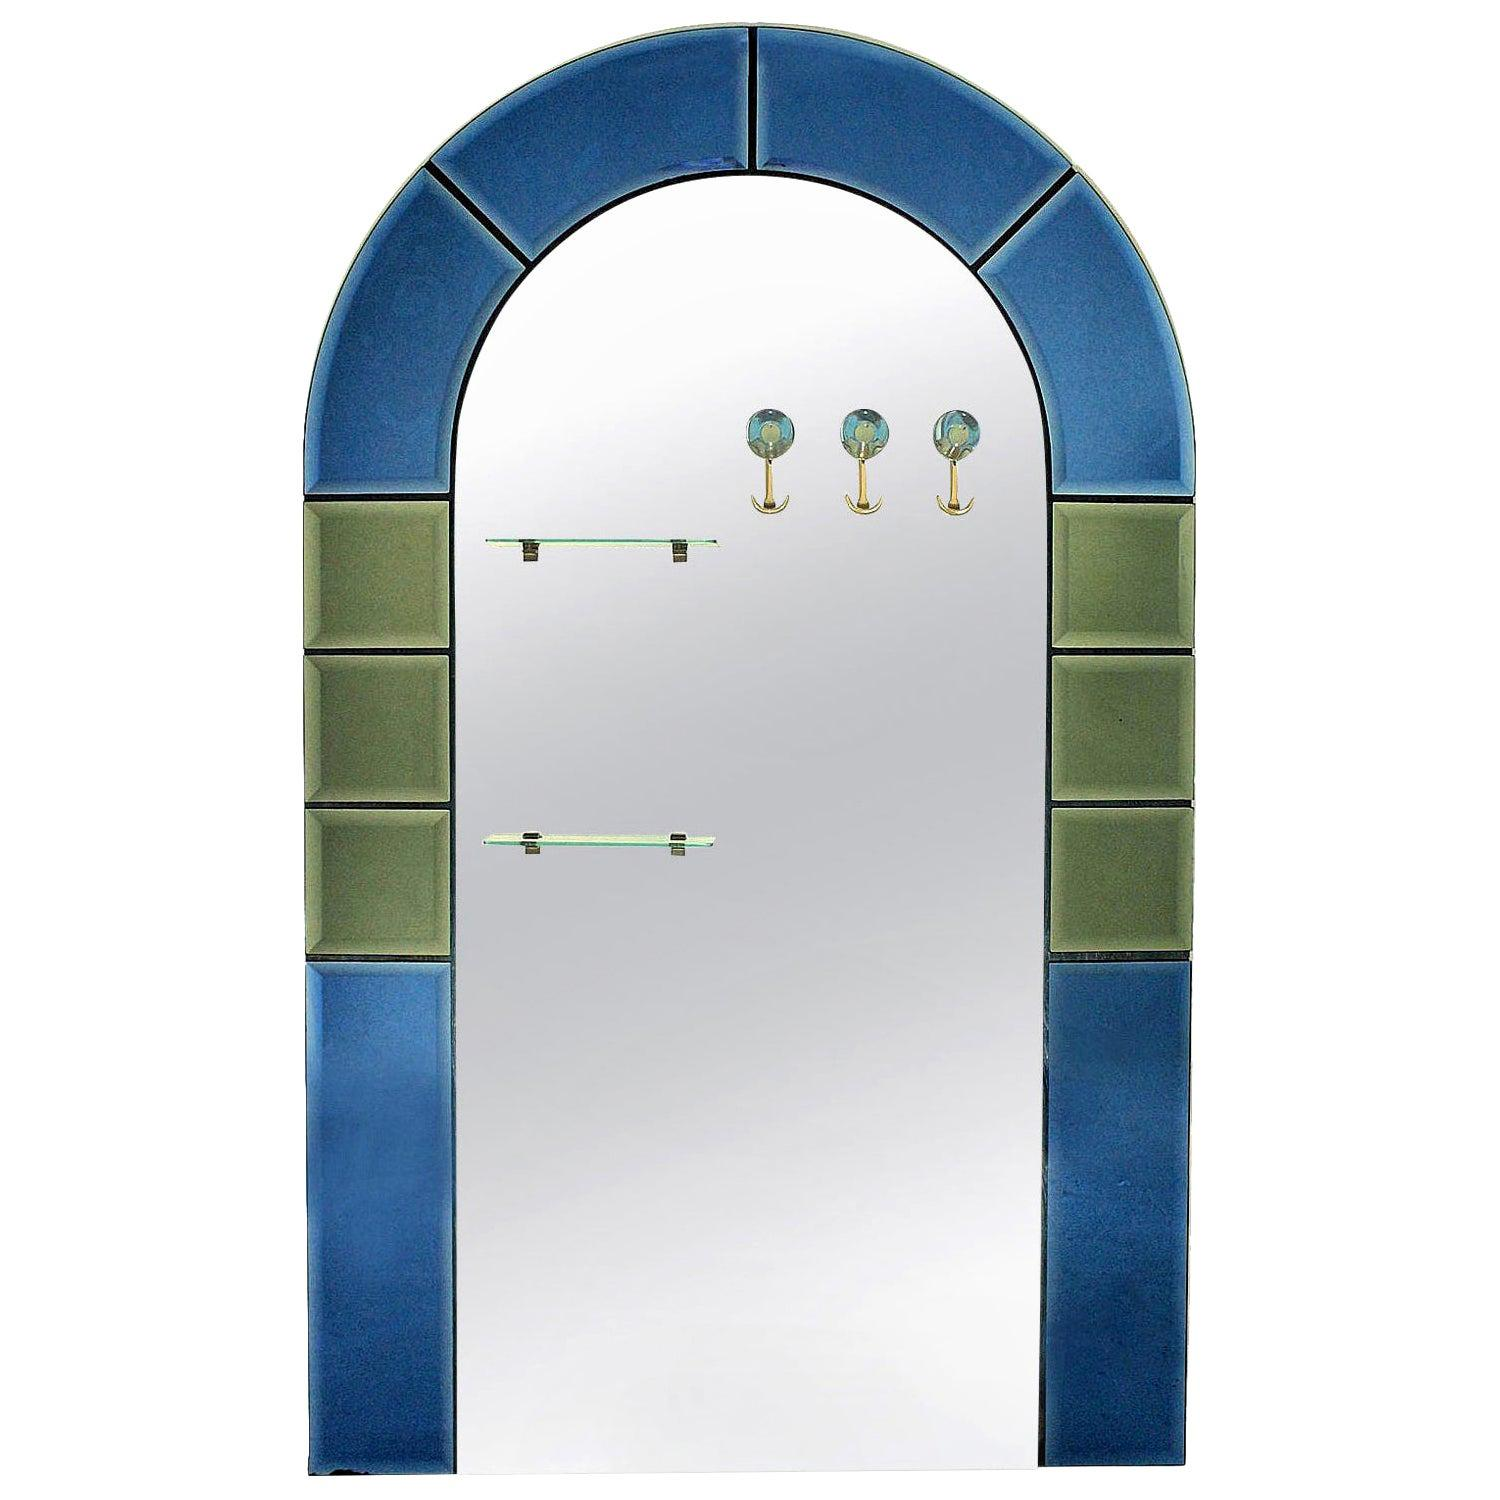 Large Floor Standing Hall Mirror with Coat Hooks